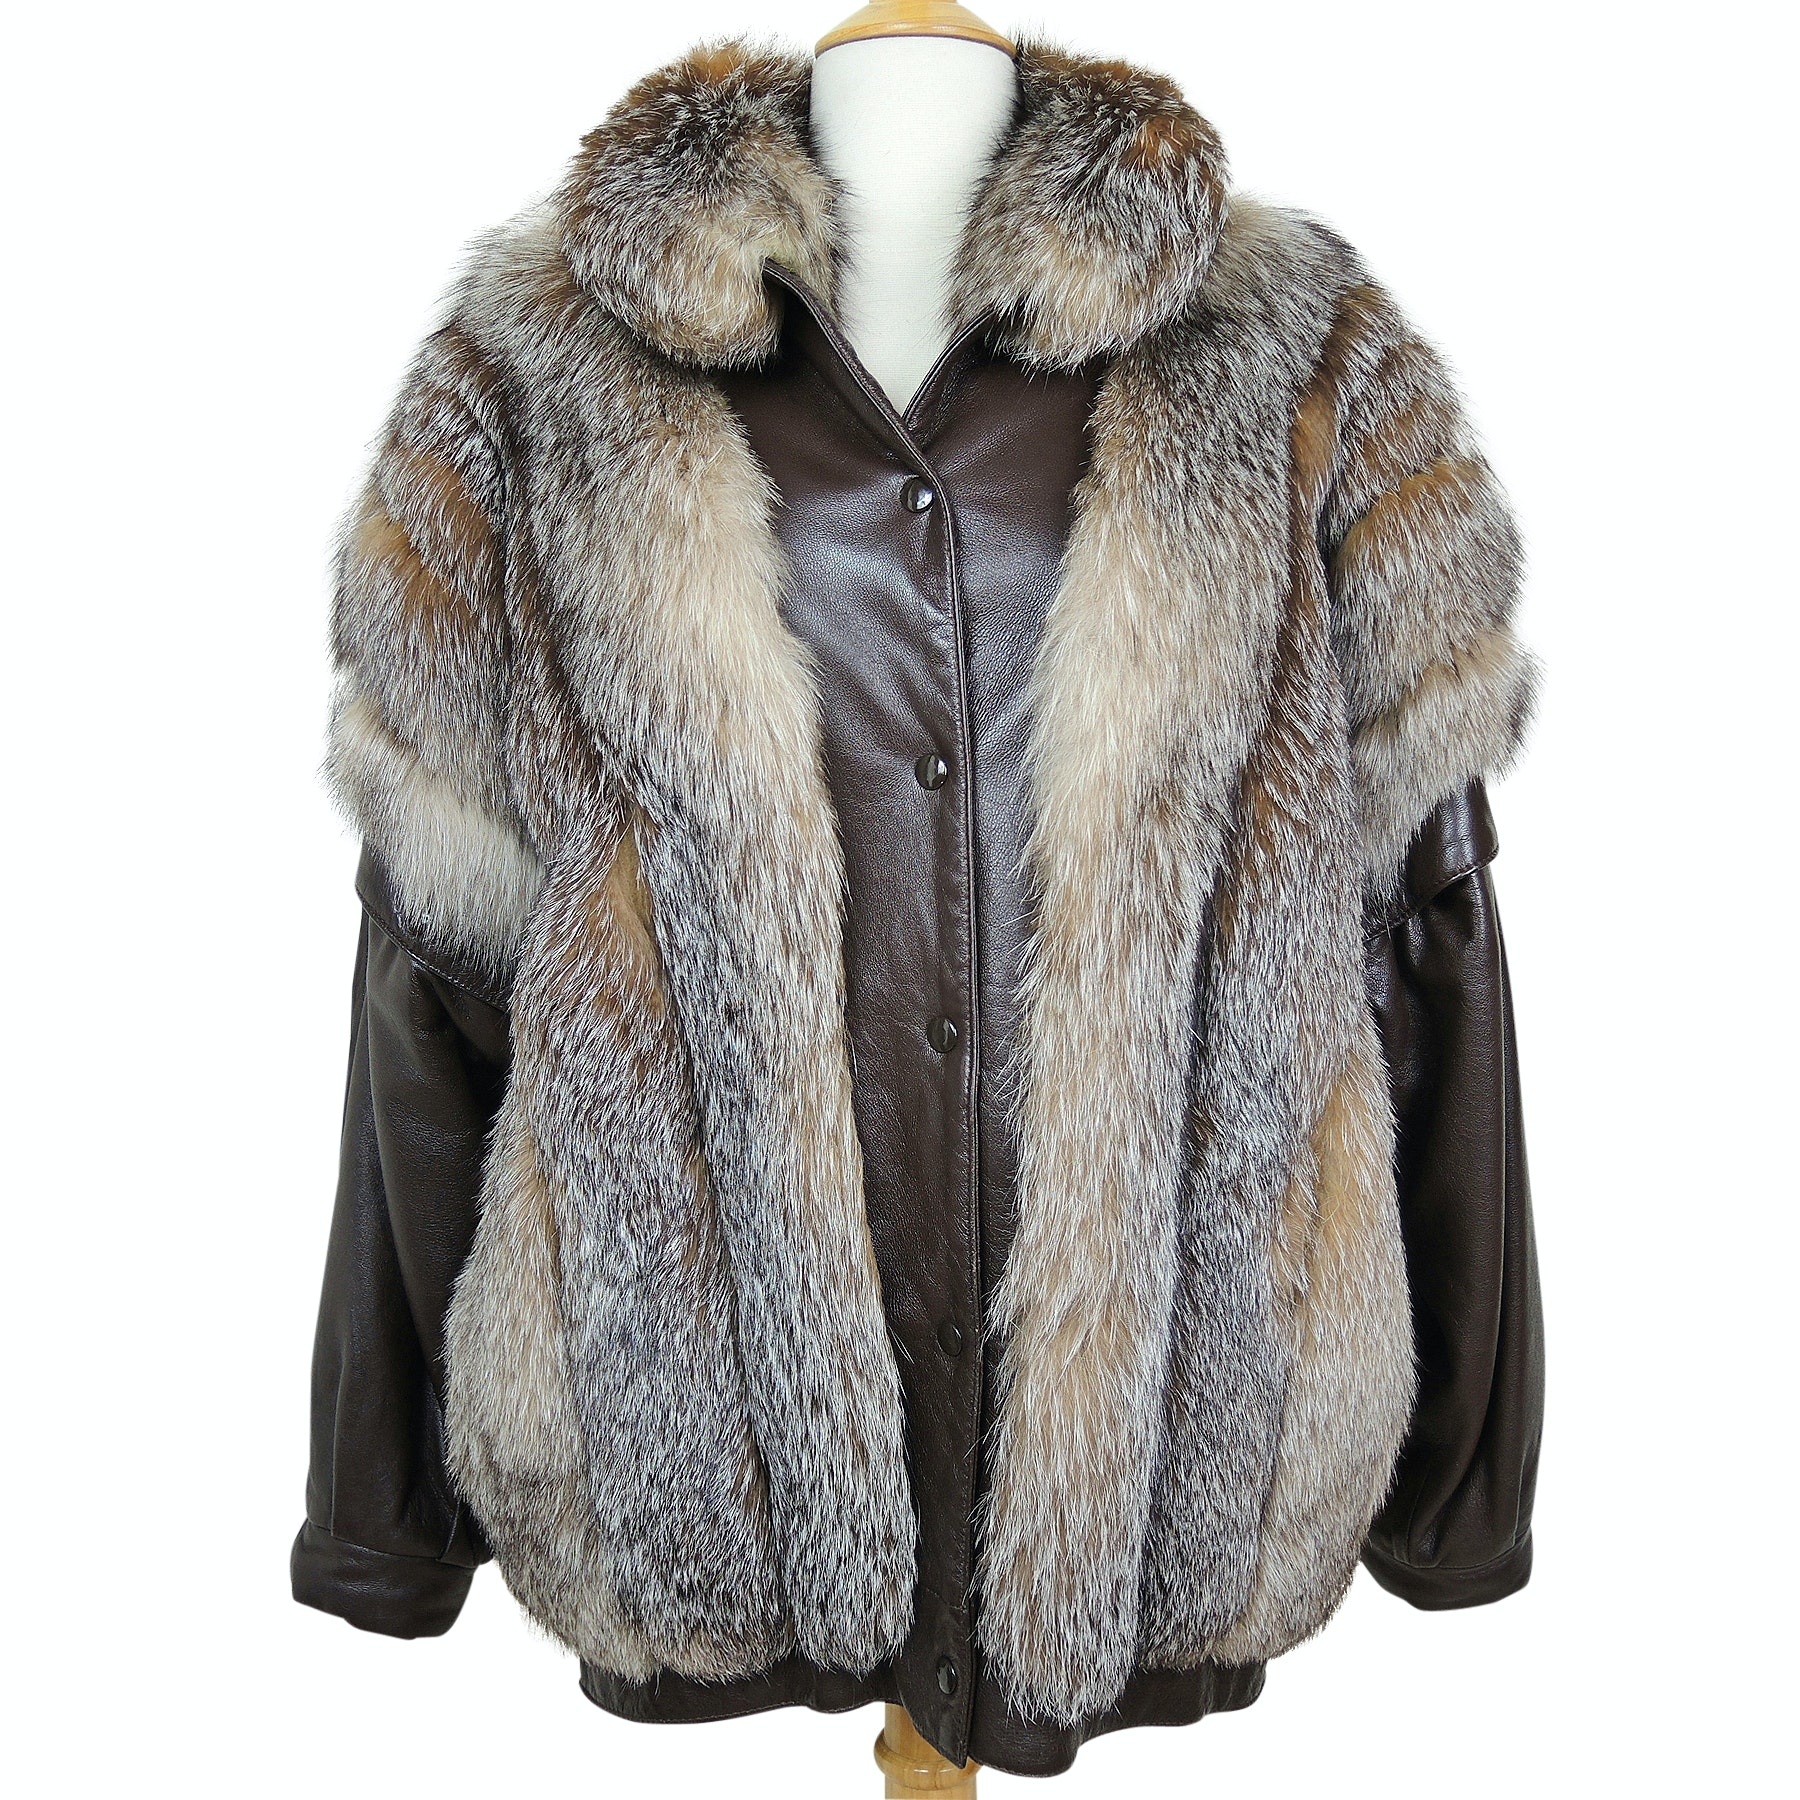 Vintage Gidding Jenny Crystal Fox Fur and Leather Convertible Jacket Vest